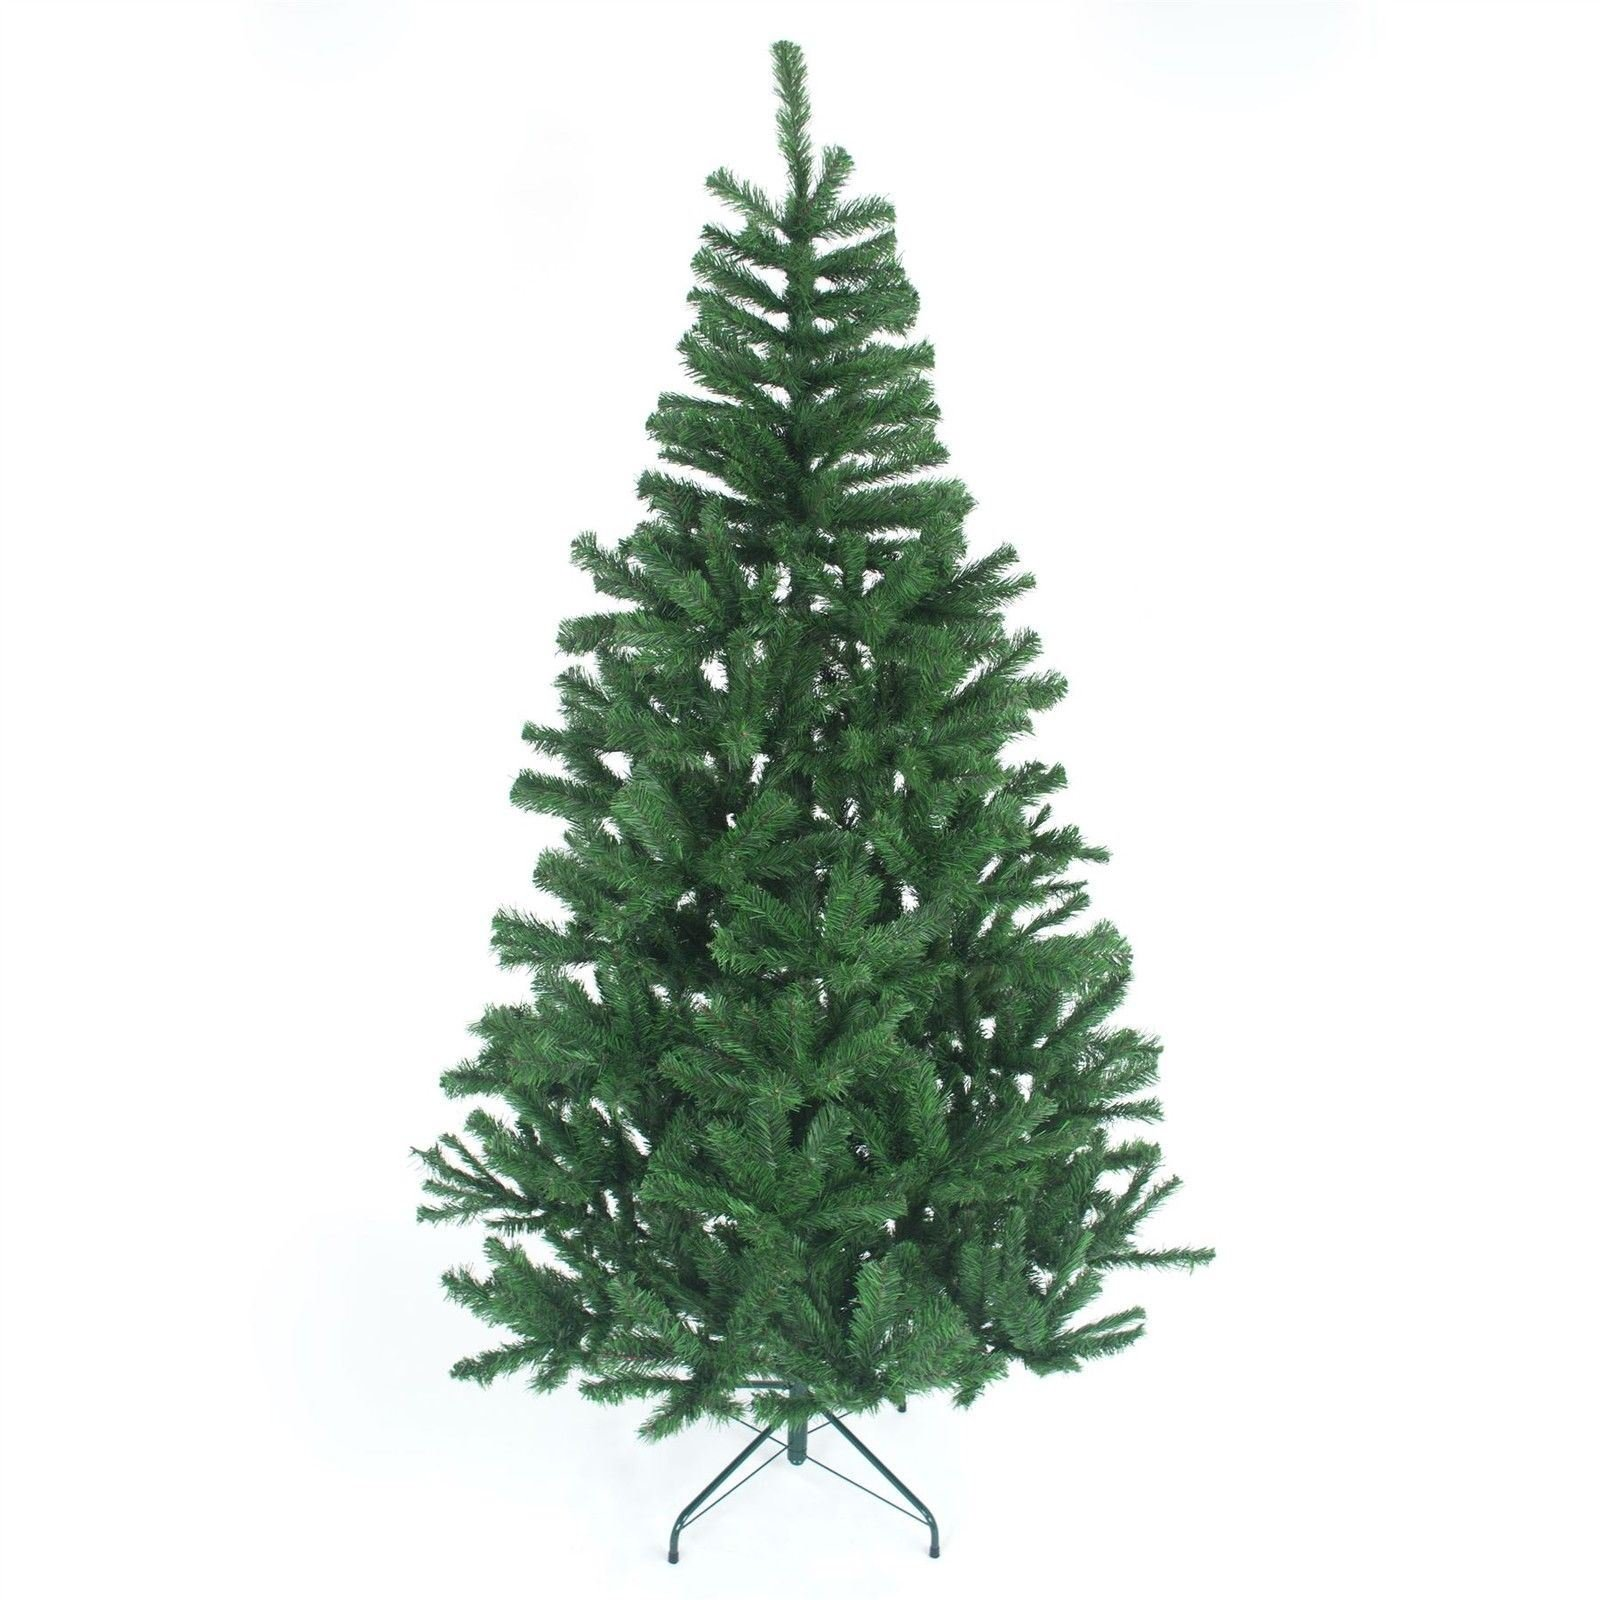 GIFT 4 ALL OCCASIONS LTD 2.1m Christmas Tree GREEN 800 Pines Artificial Tree with Metal Stand